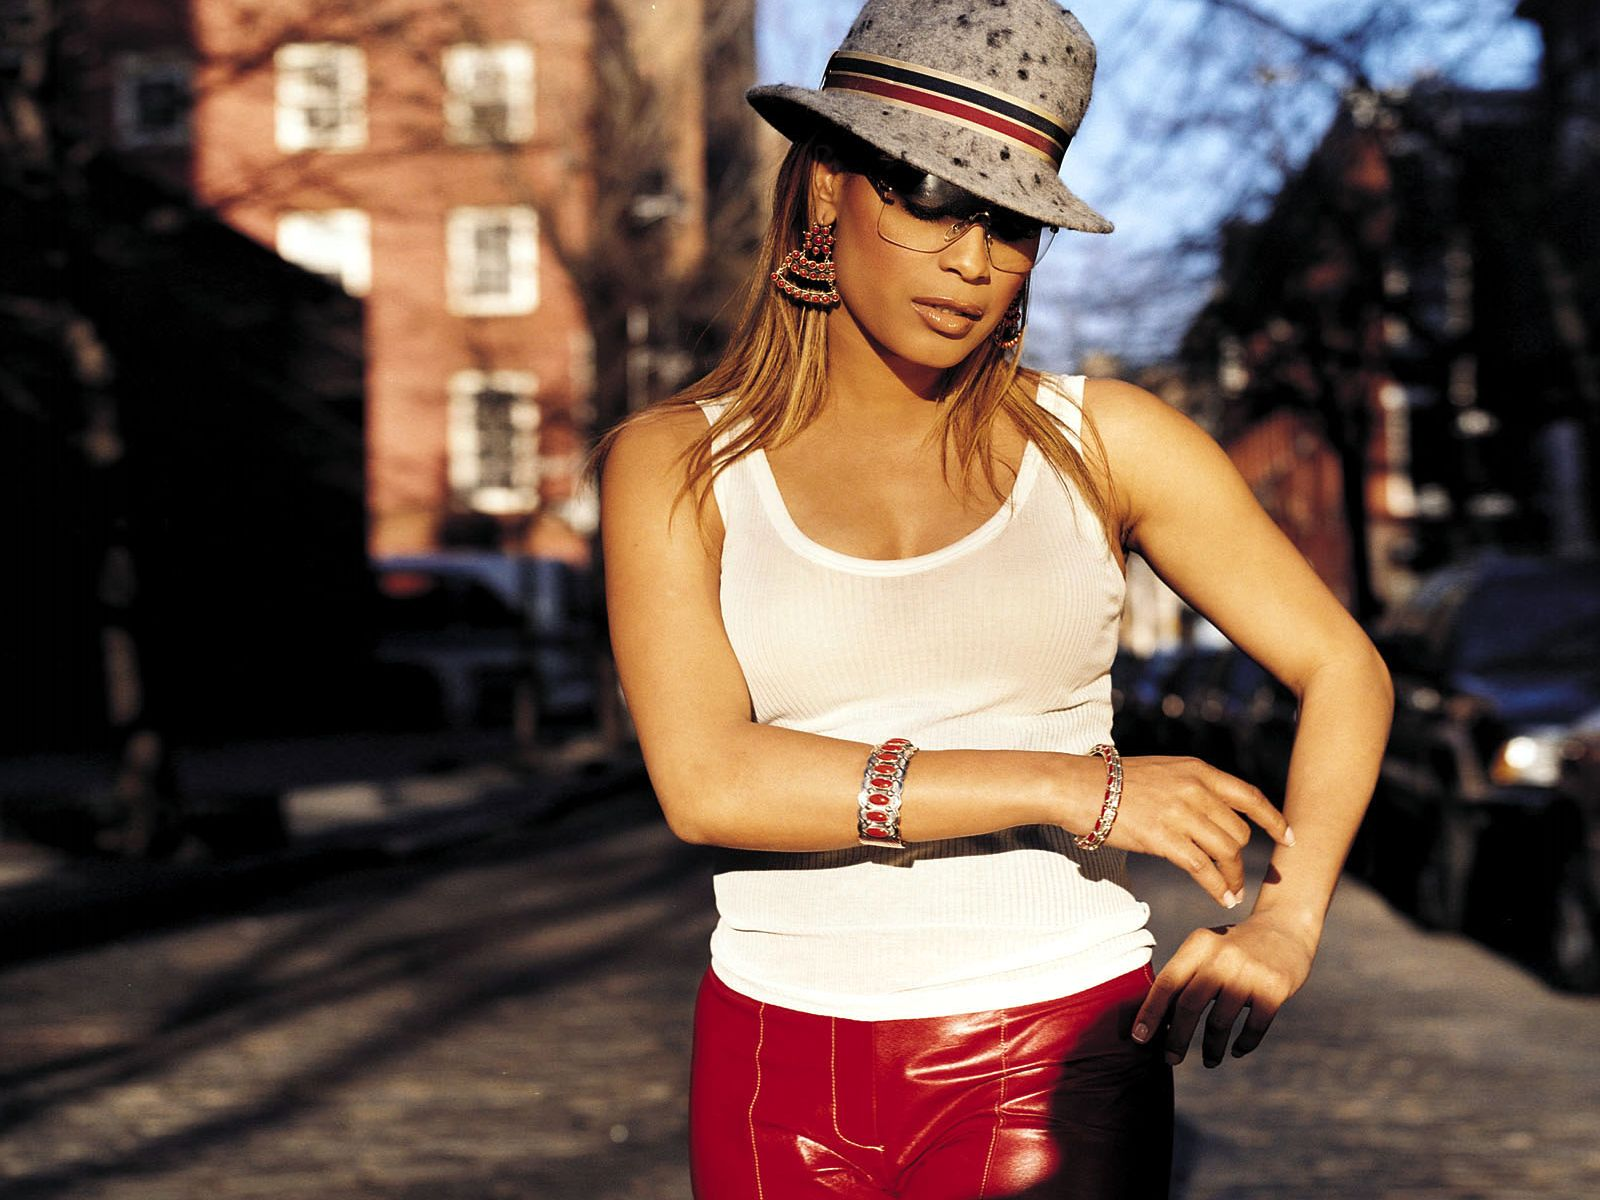 Blu cantrell black tail pictures